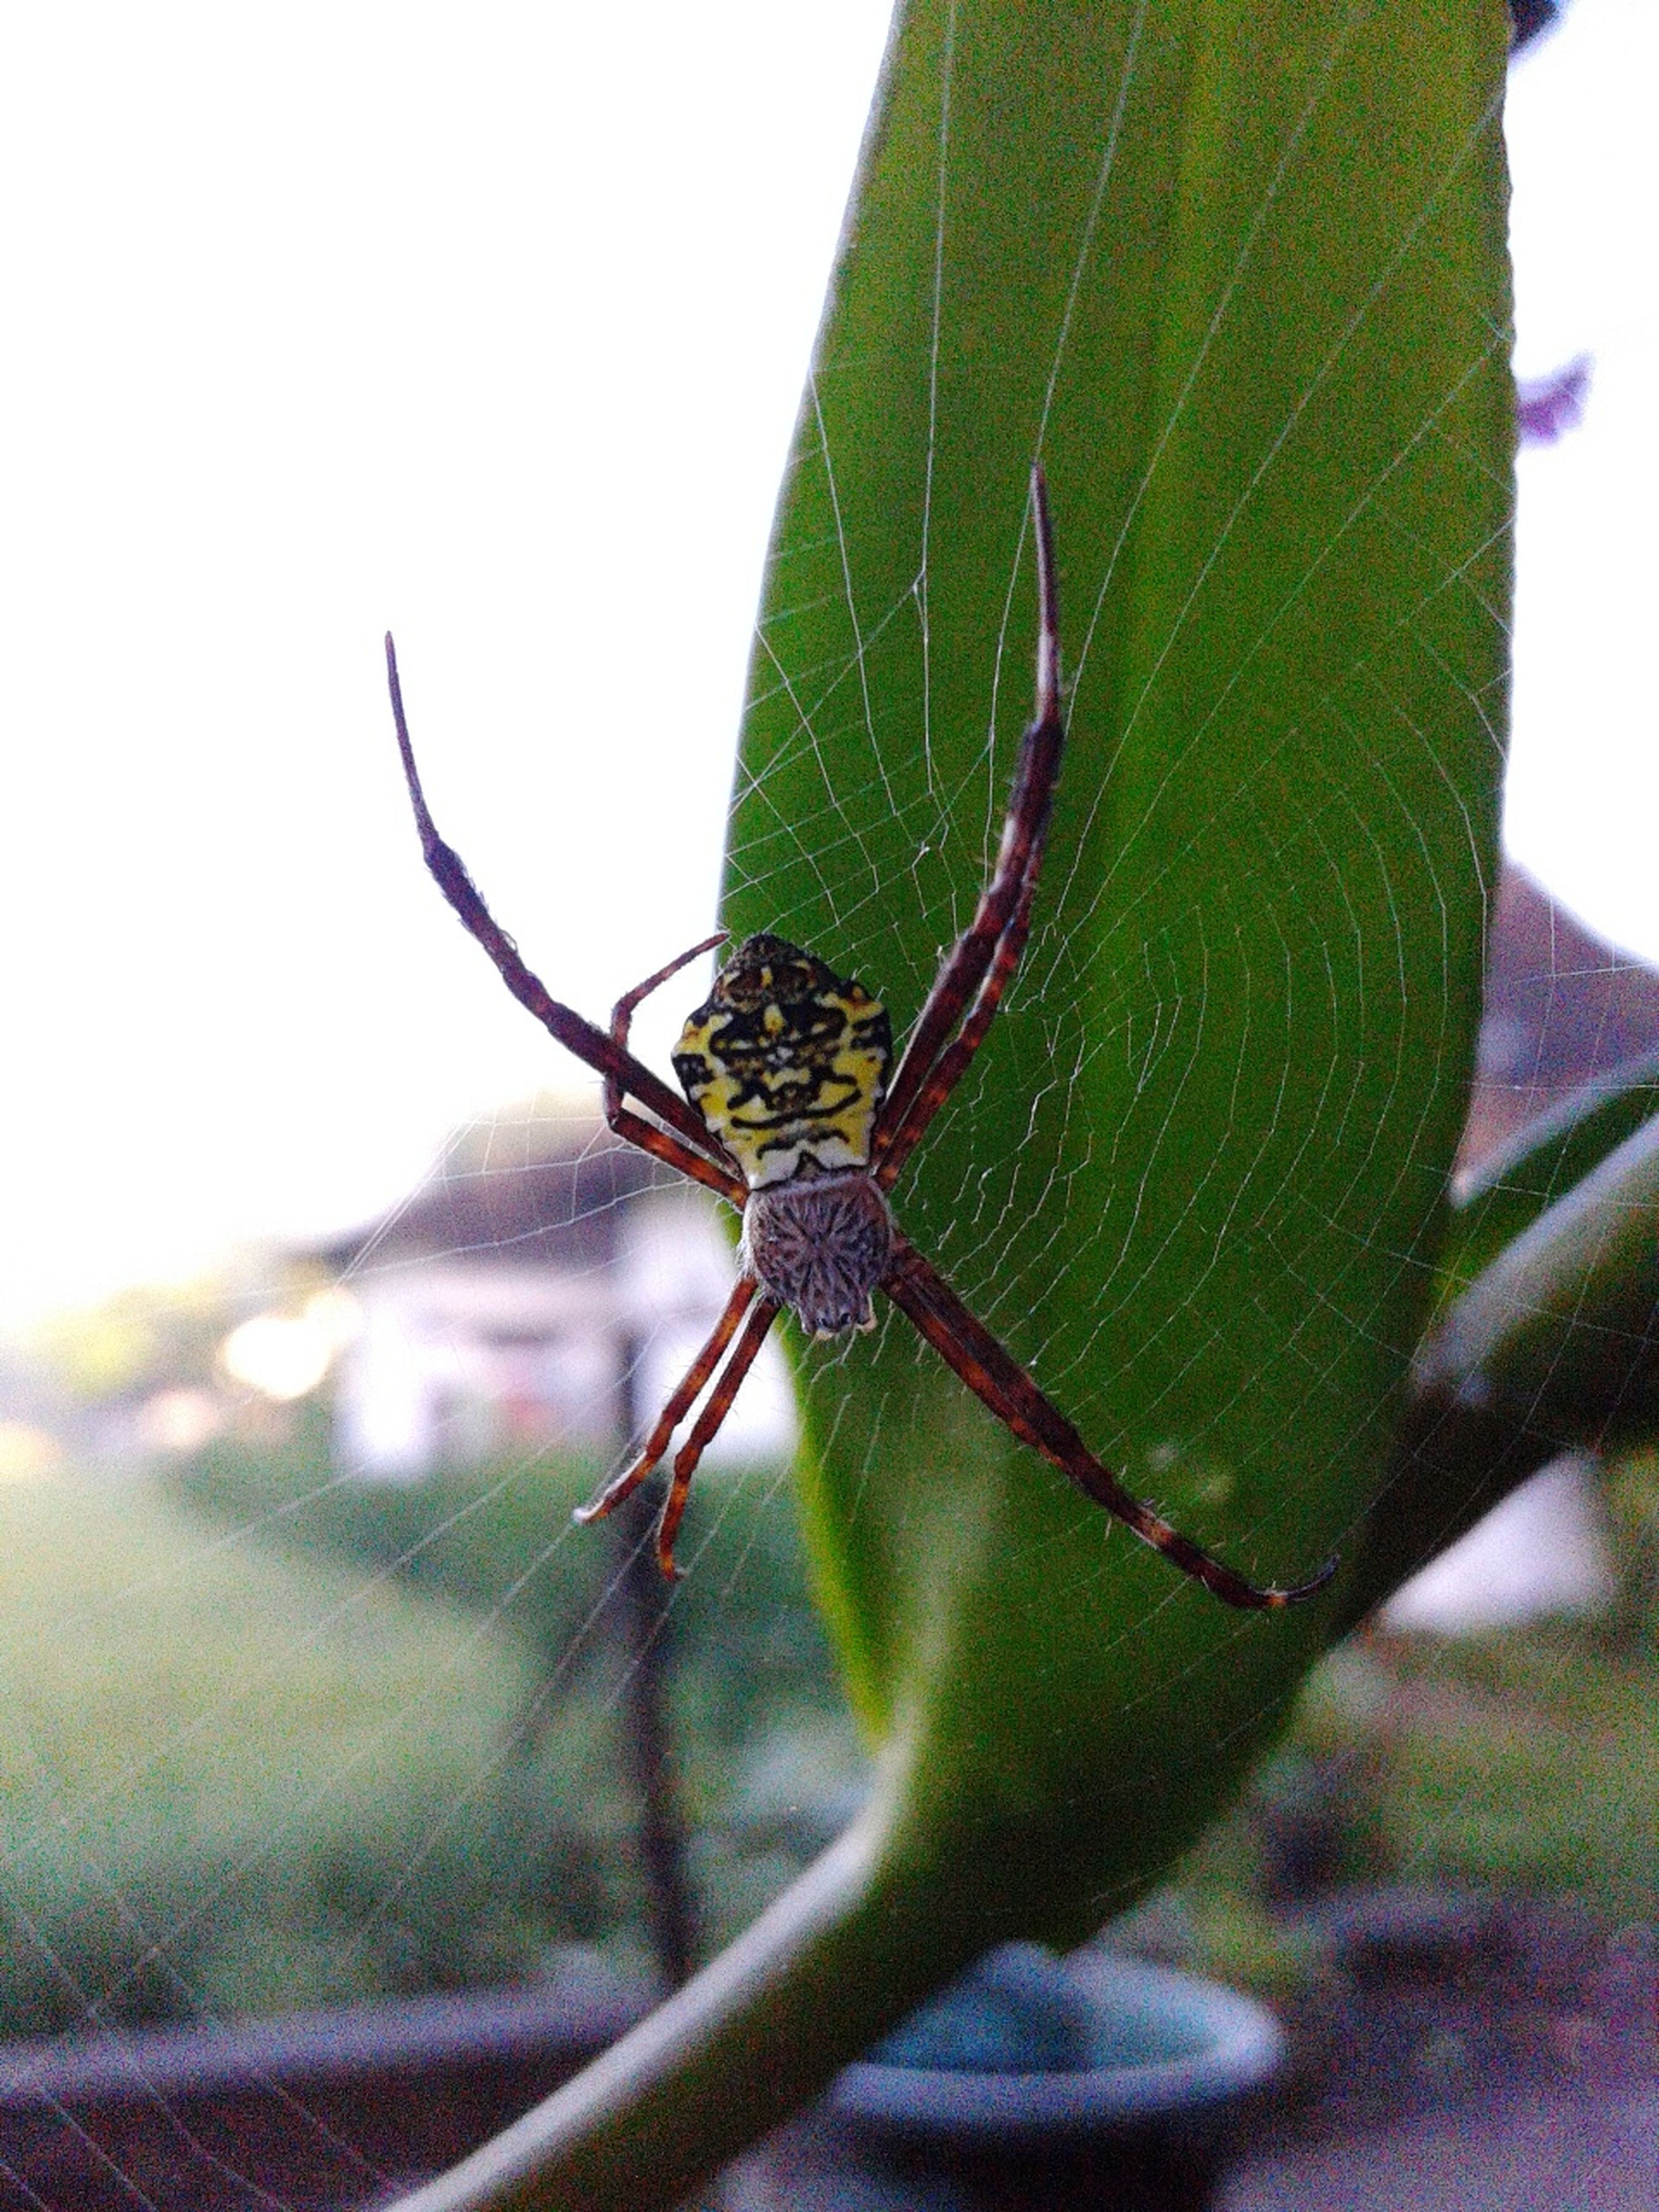 Macro Photography A Spider's Web One Animal Spider Web Morning Nature Cutes Spider Outdoors Wild Life Spider Web In Orchid Plantation INDONESIA